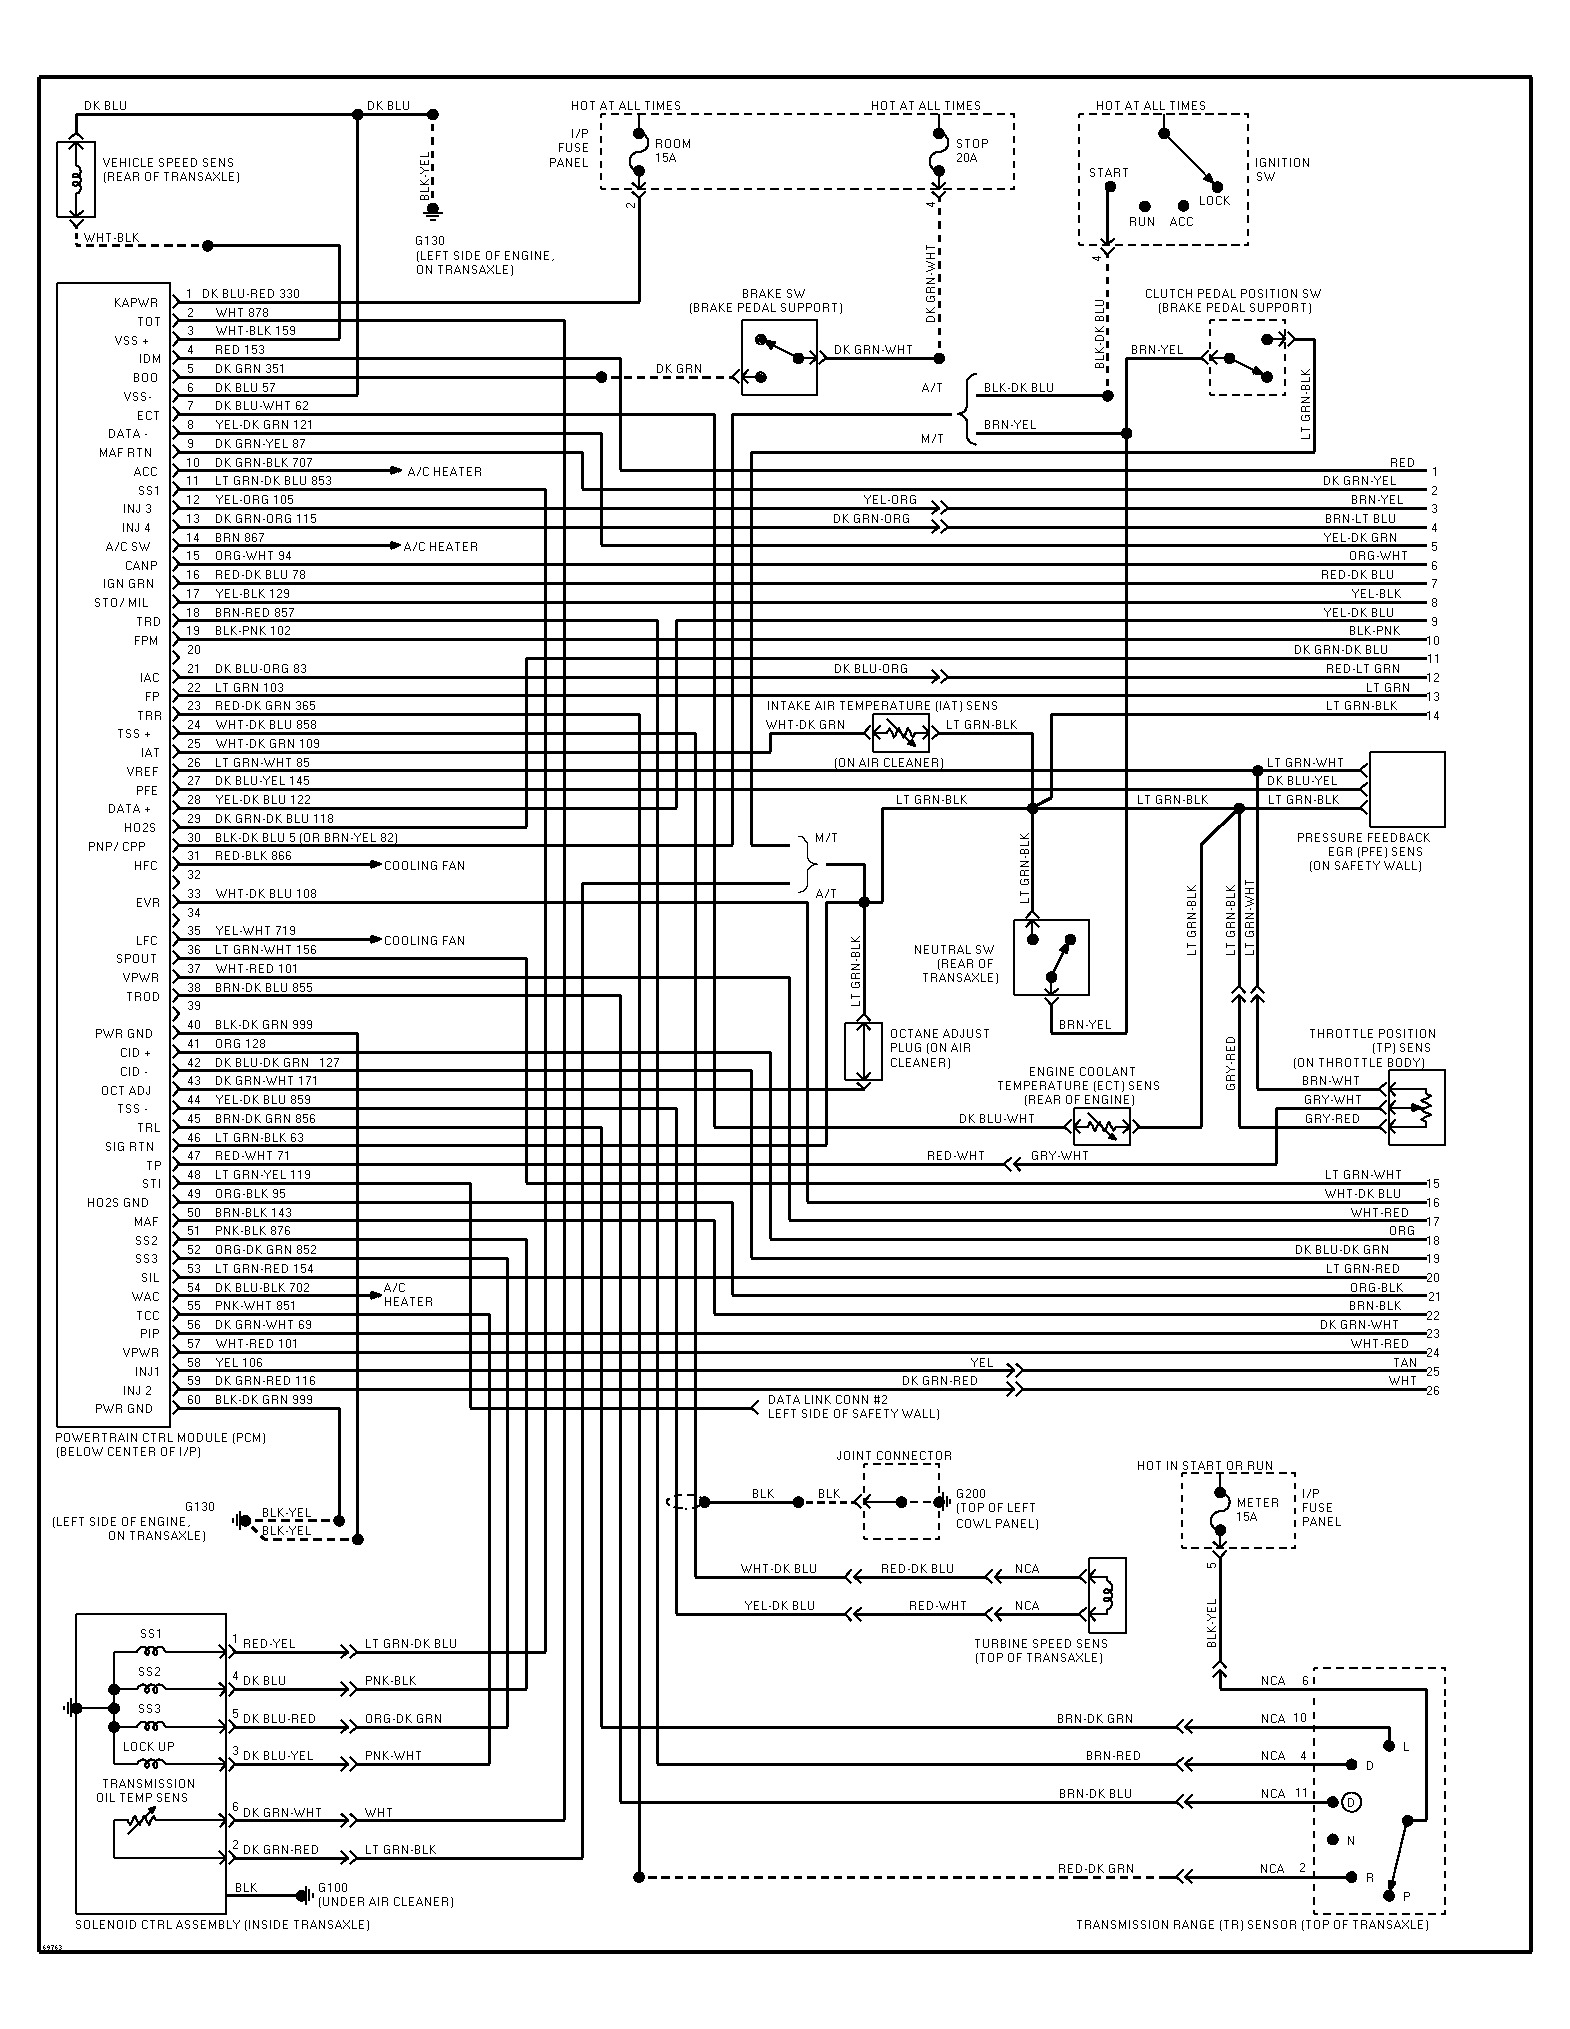 original 1995 ford escort wiring diagram i need to find a color coded ford escort wiring diagram at reclaimingppi.co